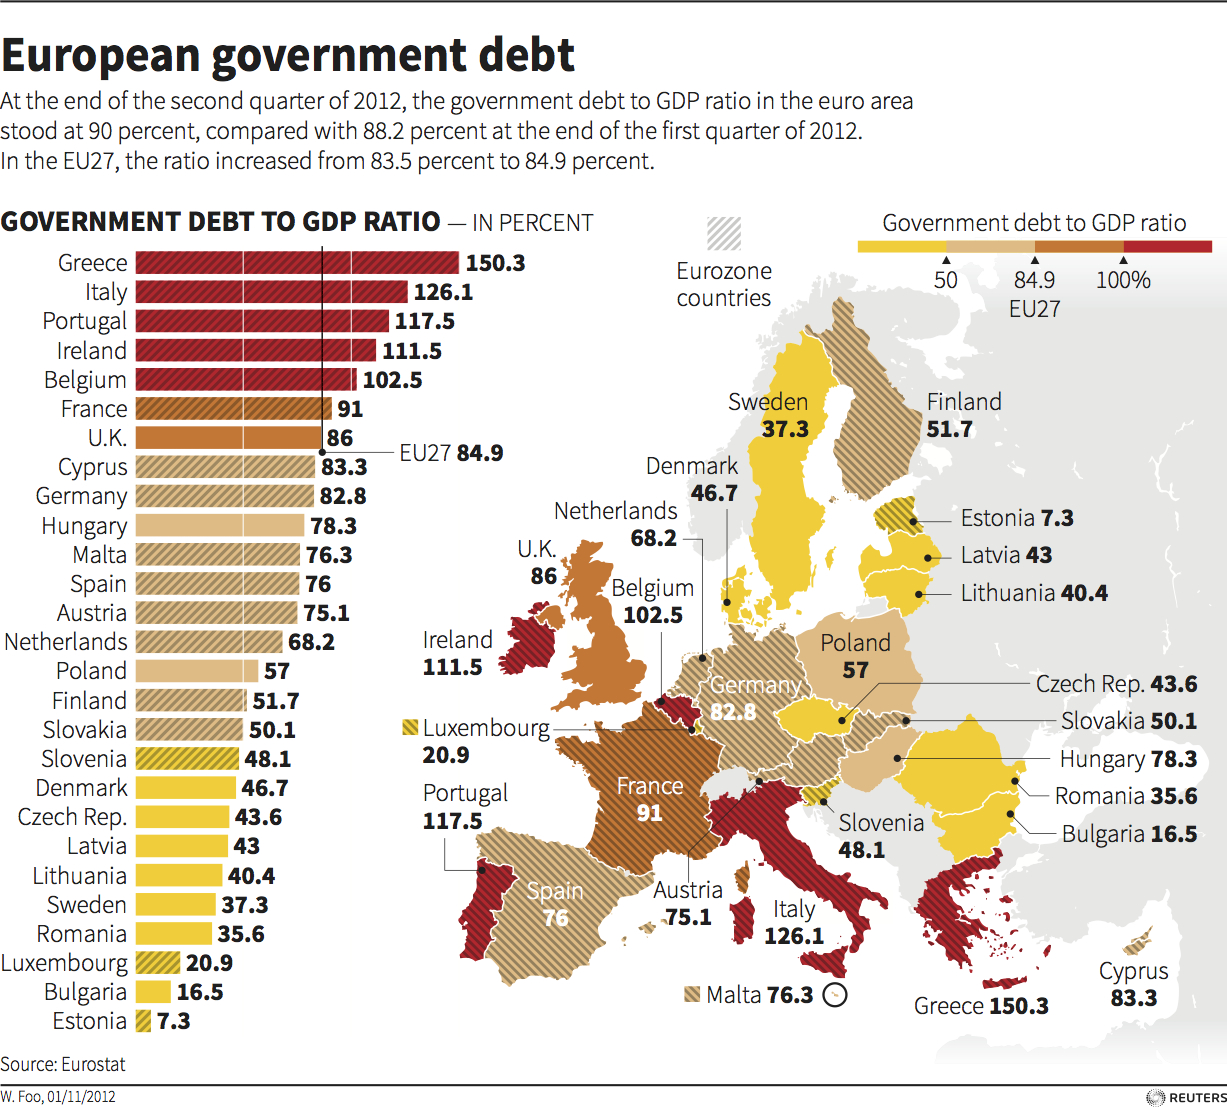 "EU Government Debt (2012) ""At the end of the second quarter of 2012, the government debt to GDP ratio in the euro area stood at 90%, compared with 88.2% at the end of the first quarter of 2012. In the EU27, the ratio increased from 83.5% to 84.9%. Today's graphic shows the government debt to GDP ratio for every European country."" (Caption and graphic credit: Reuters, 2012)"